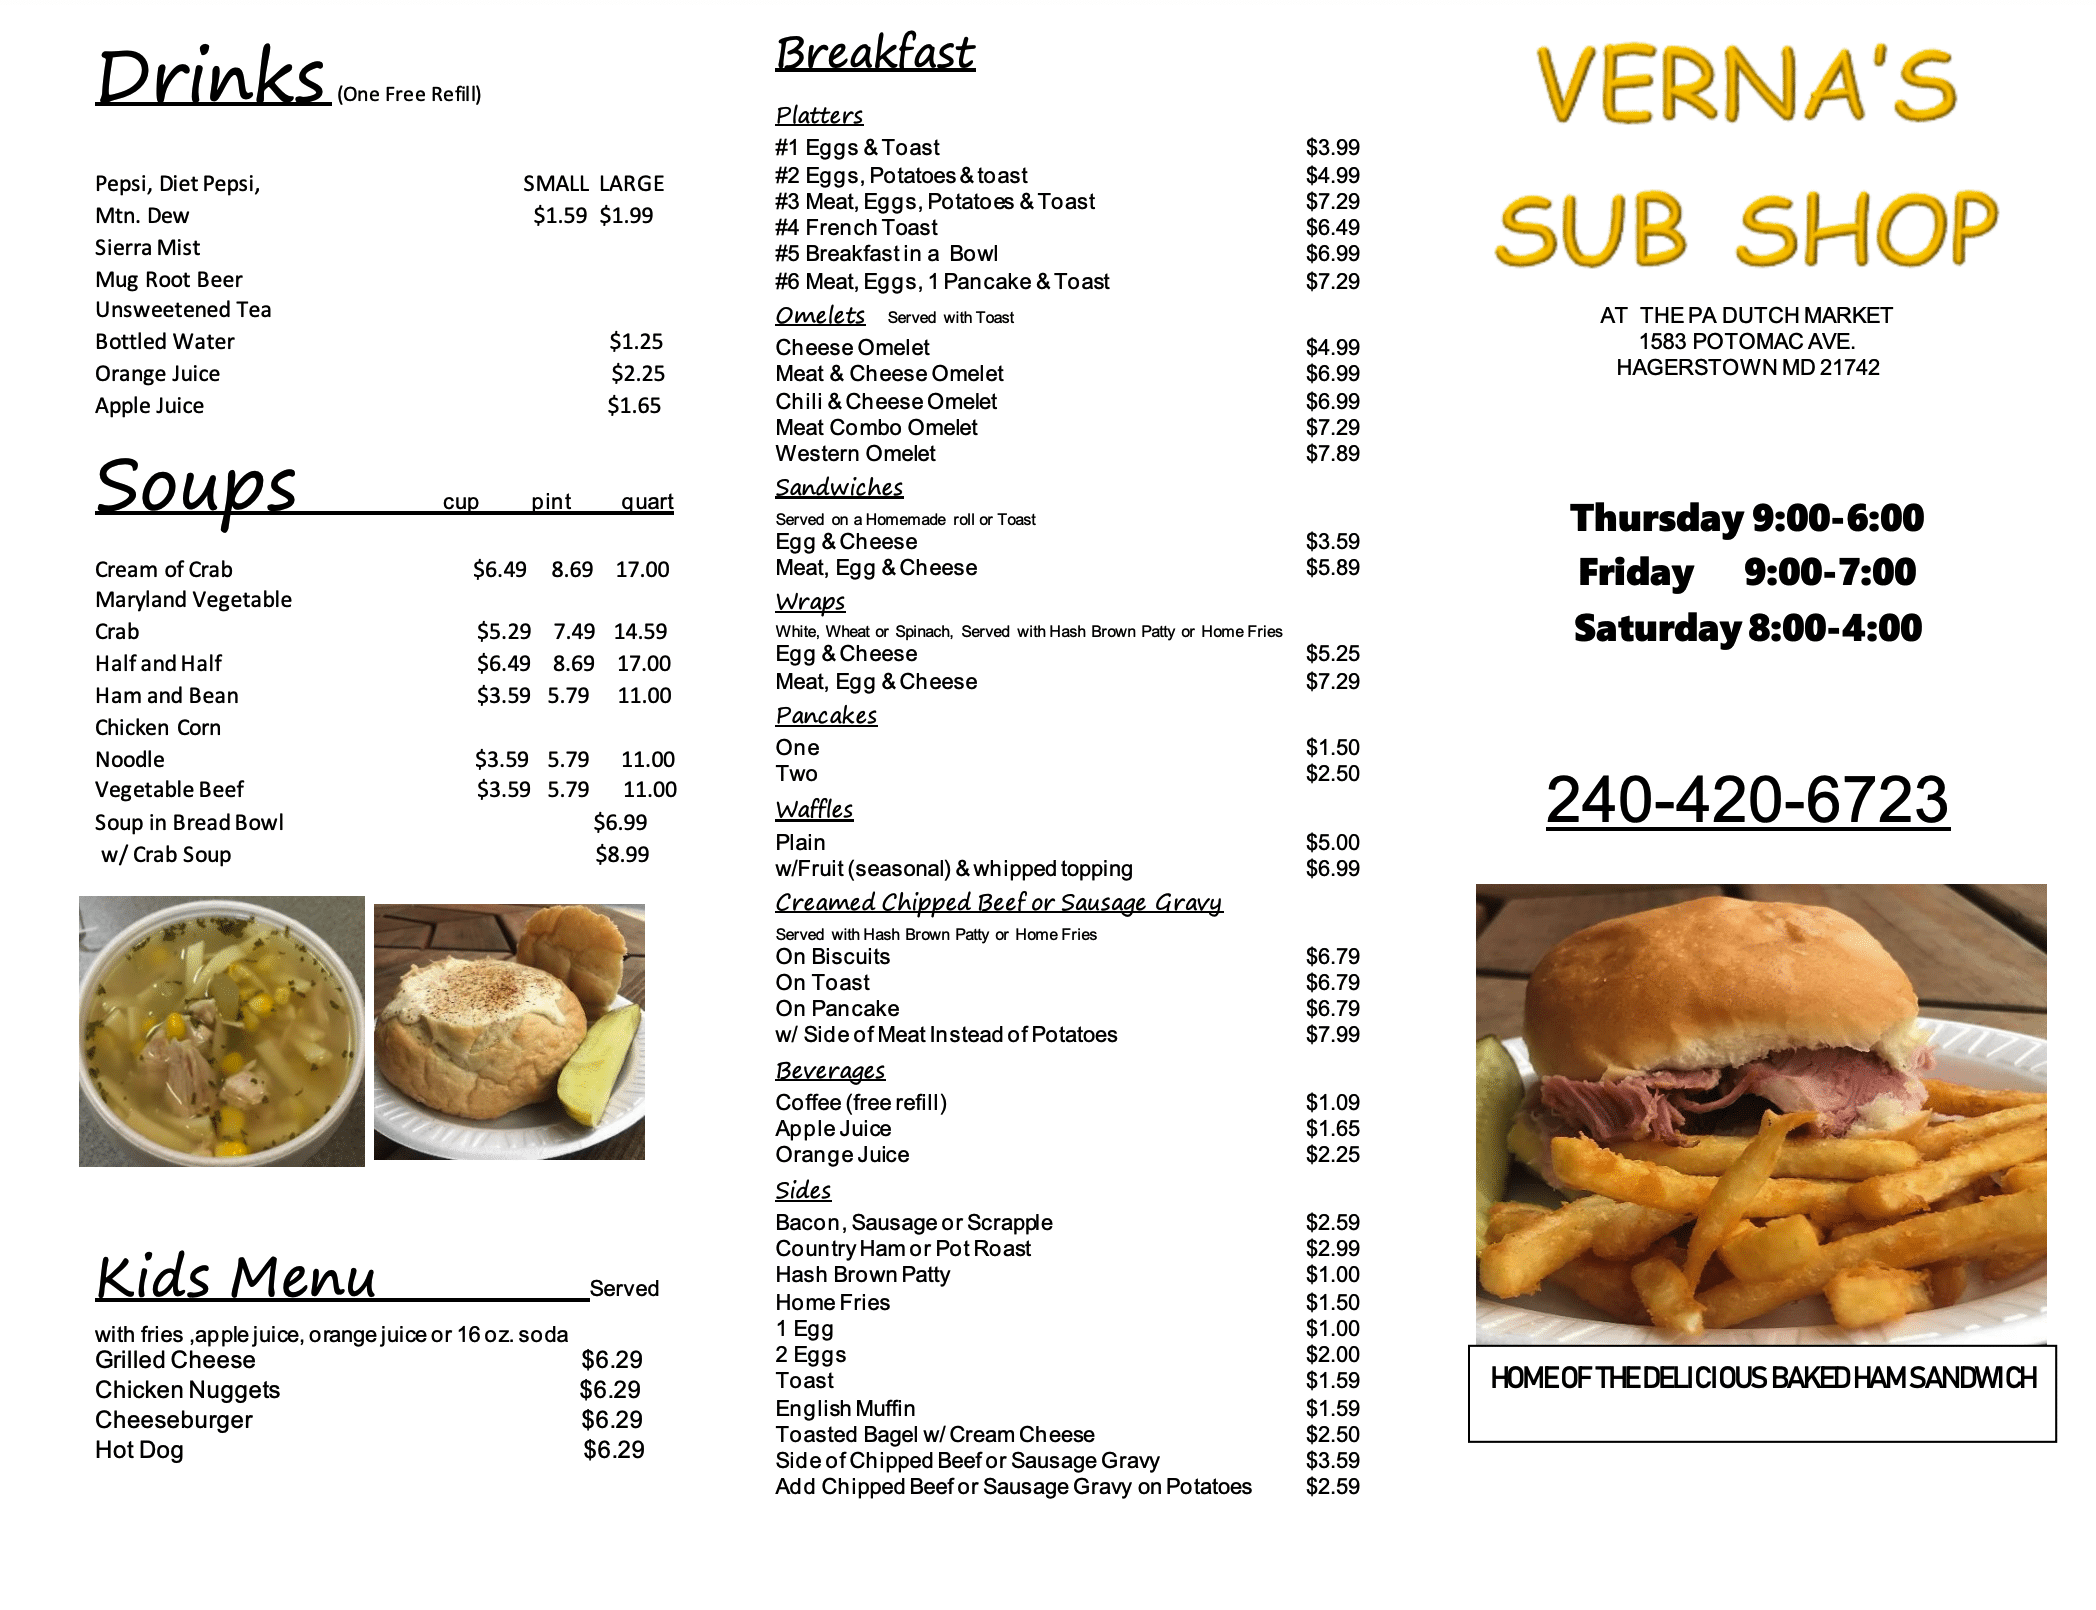 Vernas Sub Shop Menu Page 1